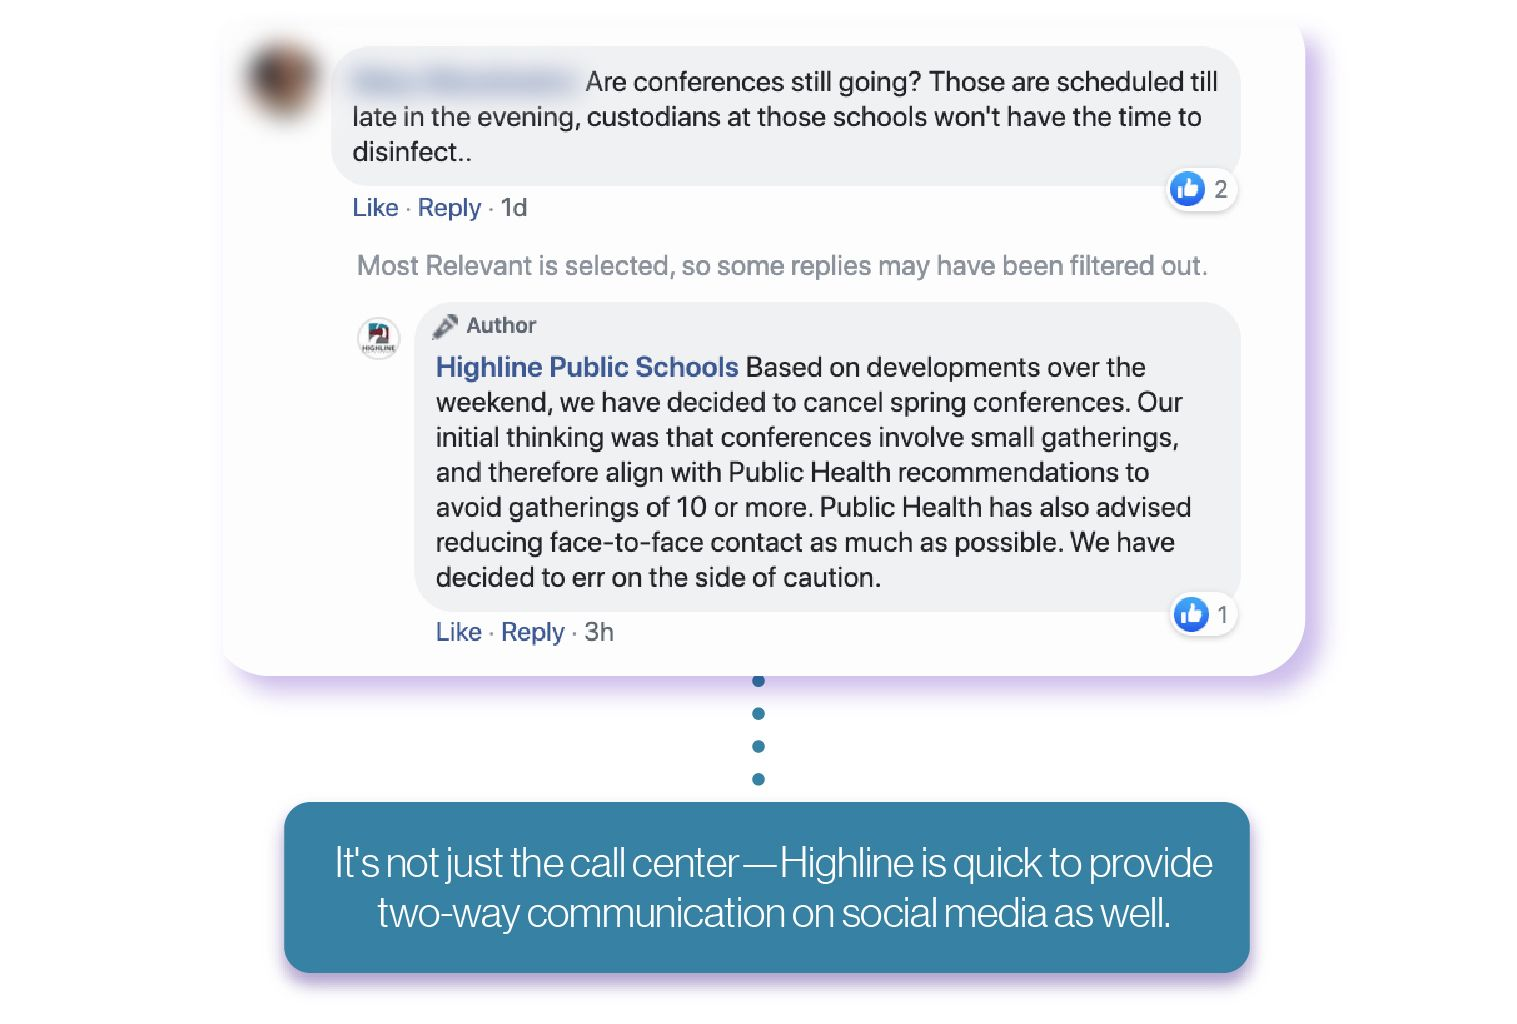 An example comment Facebook post from Highline schools shows the district responding to a community member with updated information.